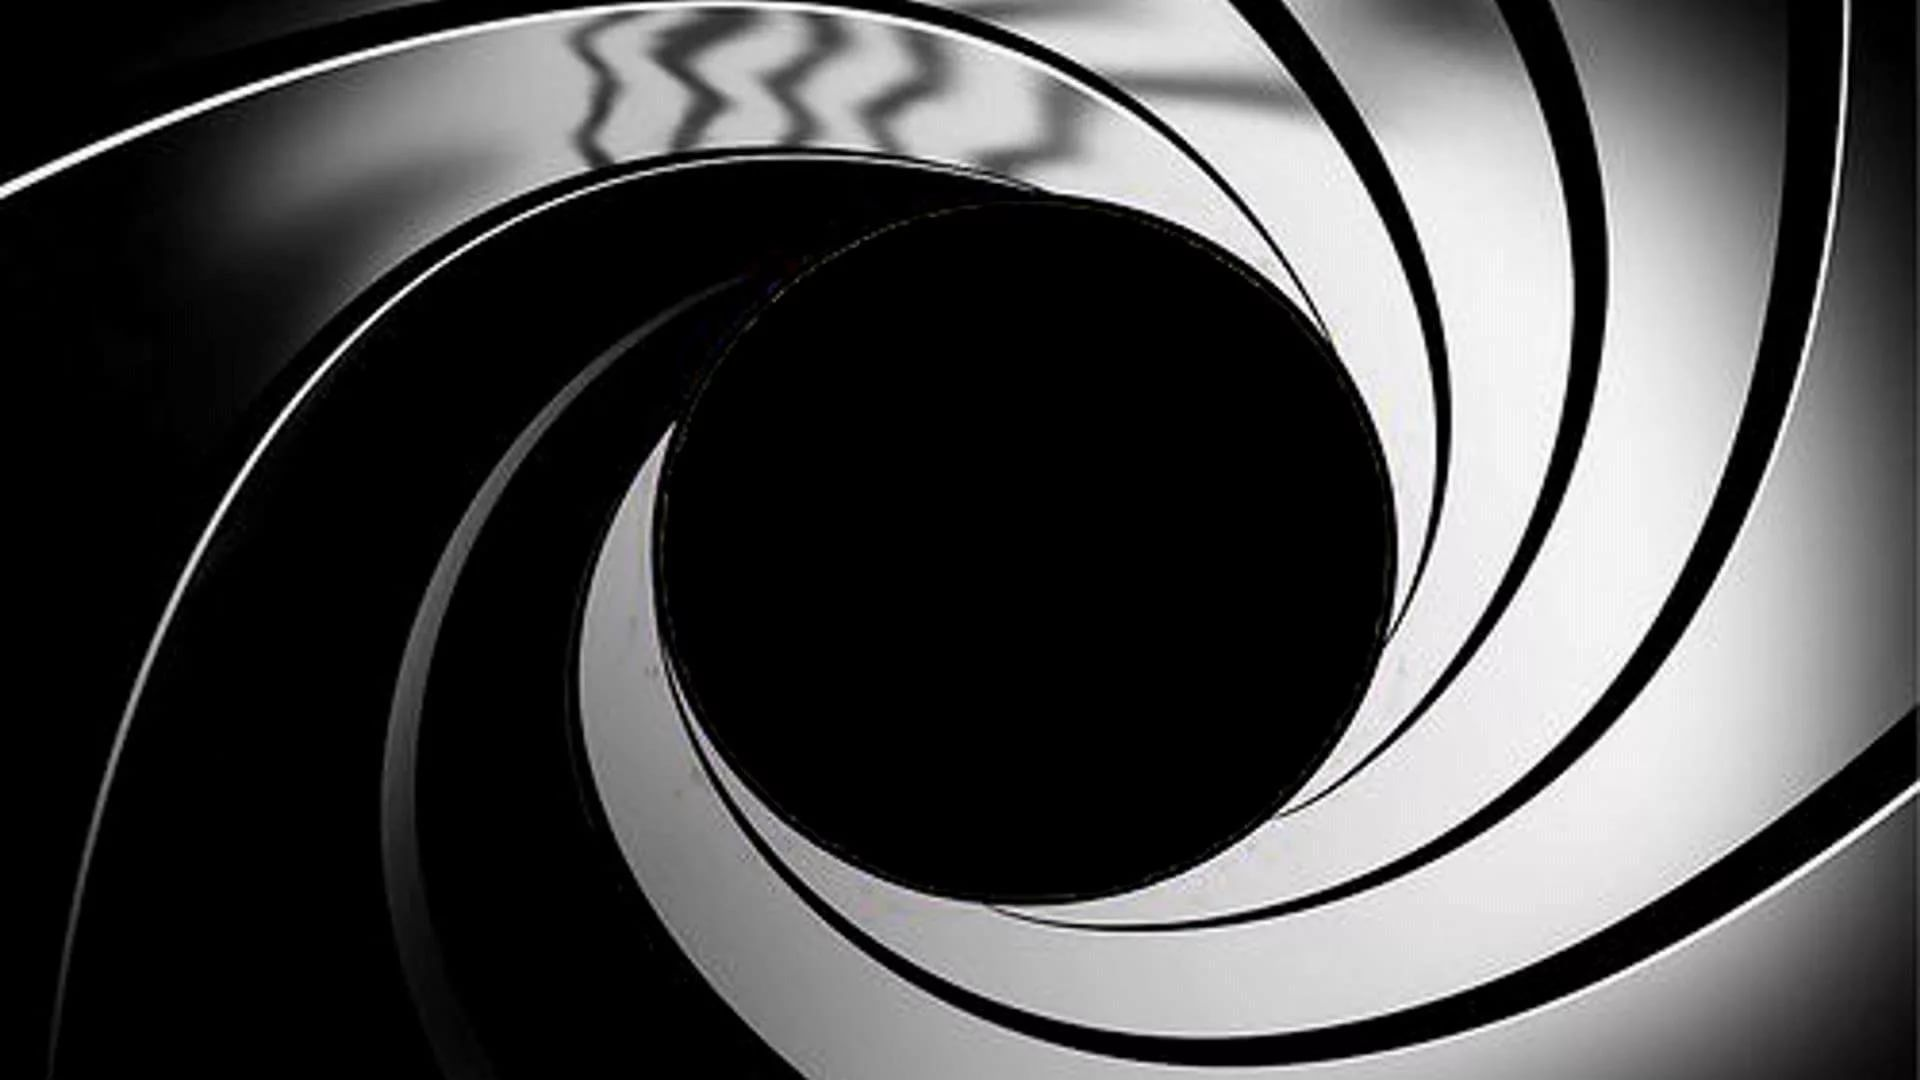 James Bond download free wallpapers for pc in hd